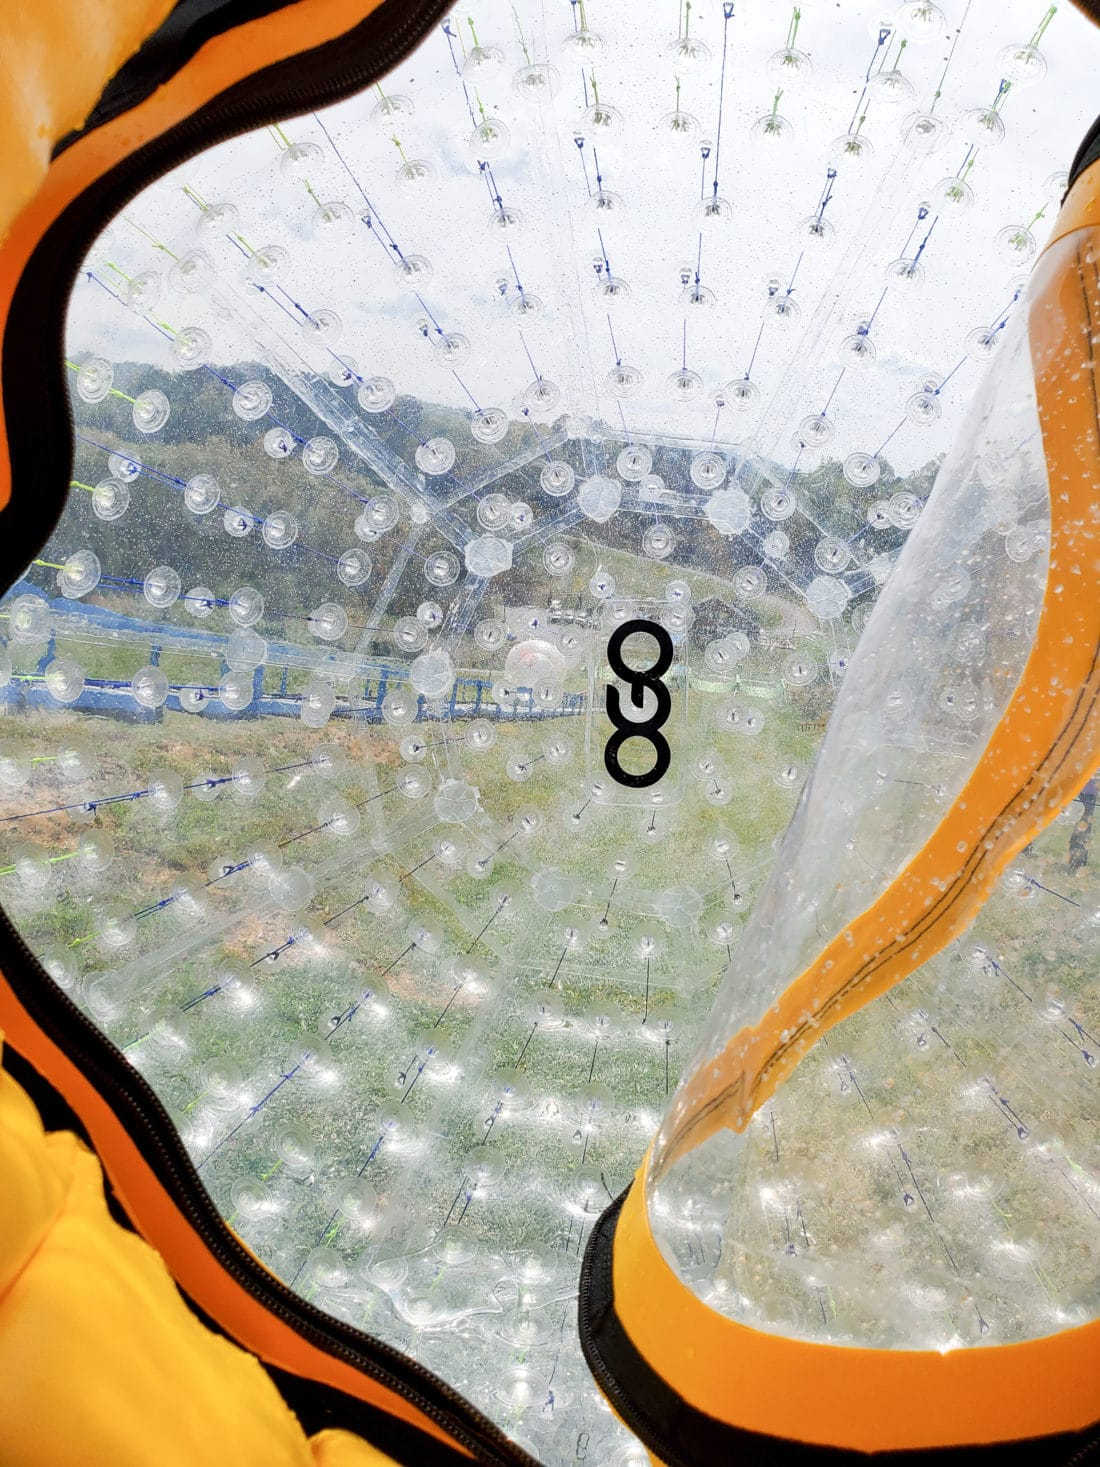 Outdoor Gravity Park Ogo Inside. Outdoor Gravity Park is an amazing adventure destination in Pigeon Forge, Tennessee at the foothills of the Smoky Mountains featuring zorbing, an attraction straight out of New Zealand.